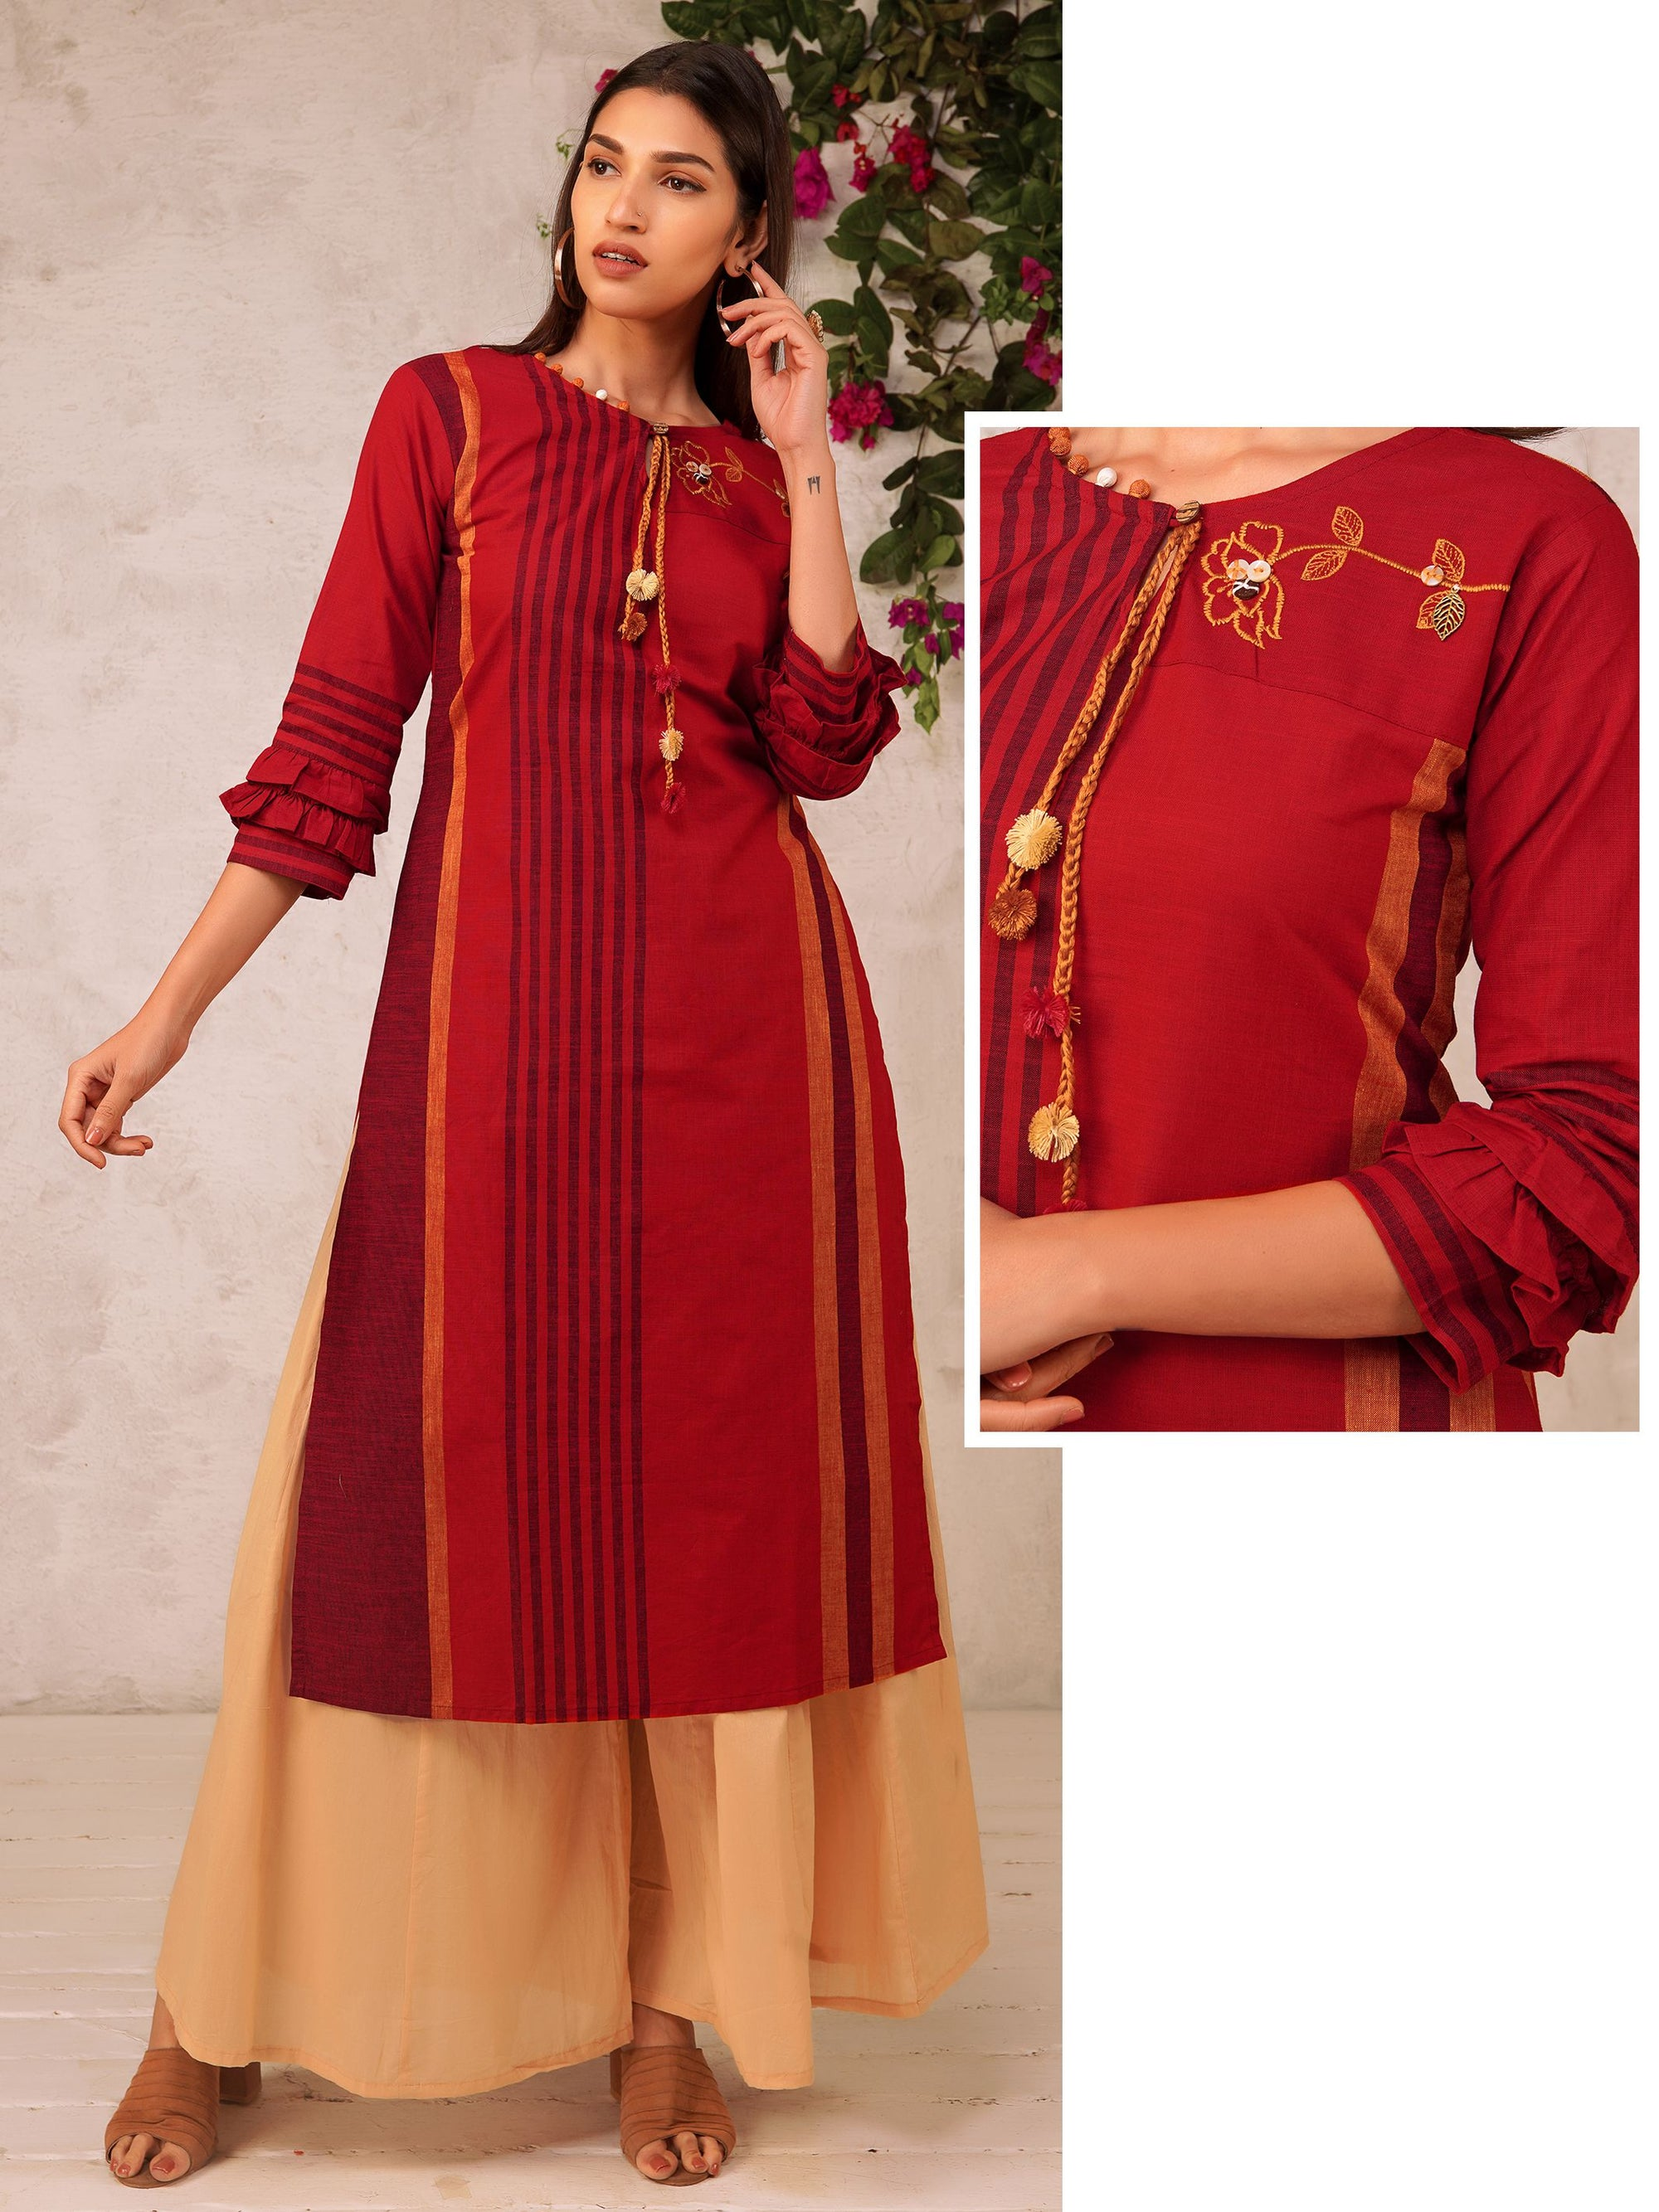 Resham Work Braided dori With Pompom Ornamented Cotton Kurti